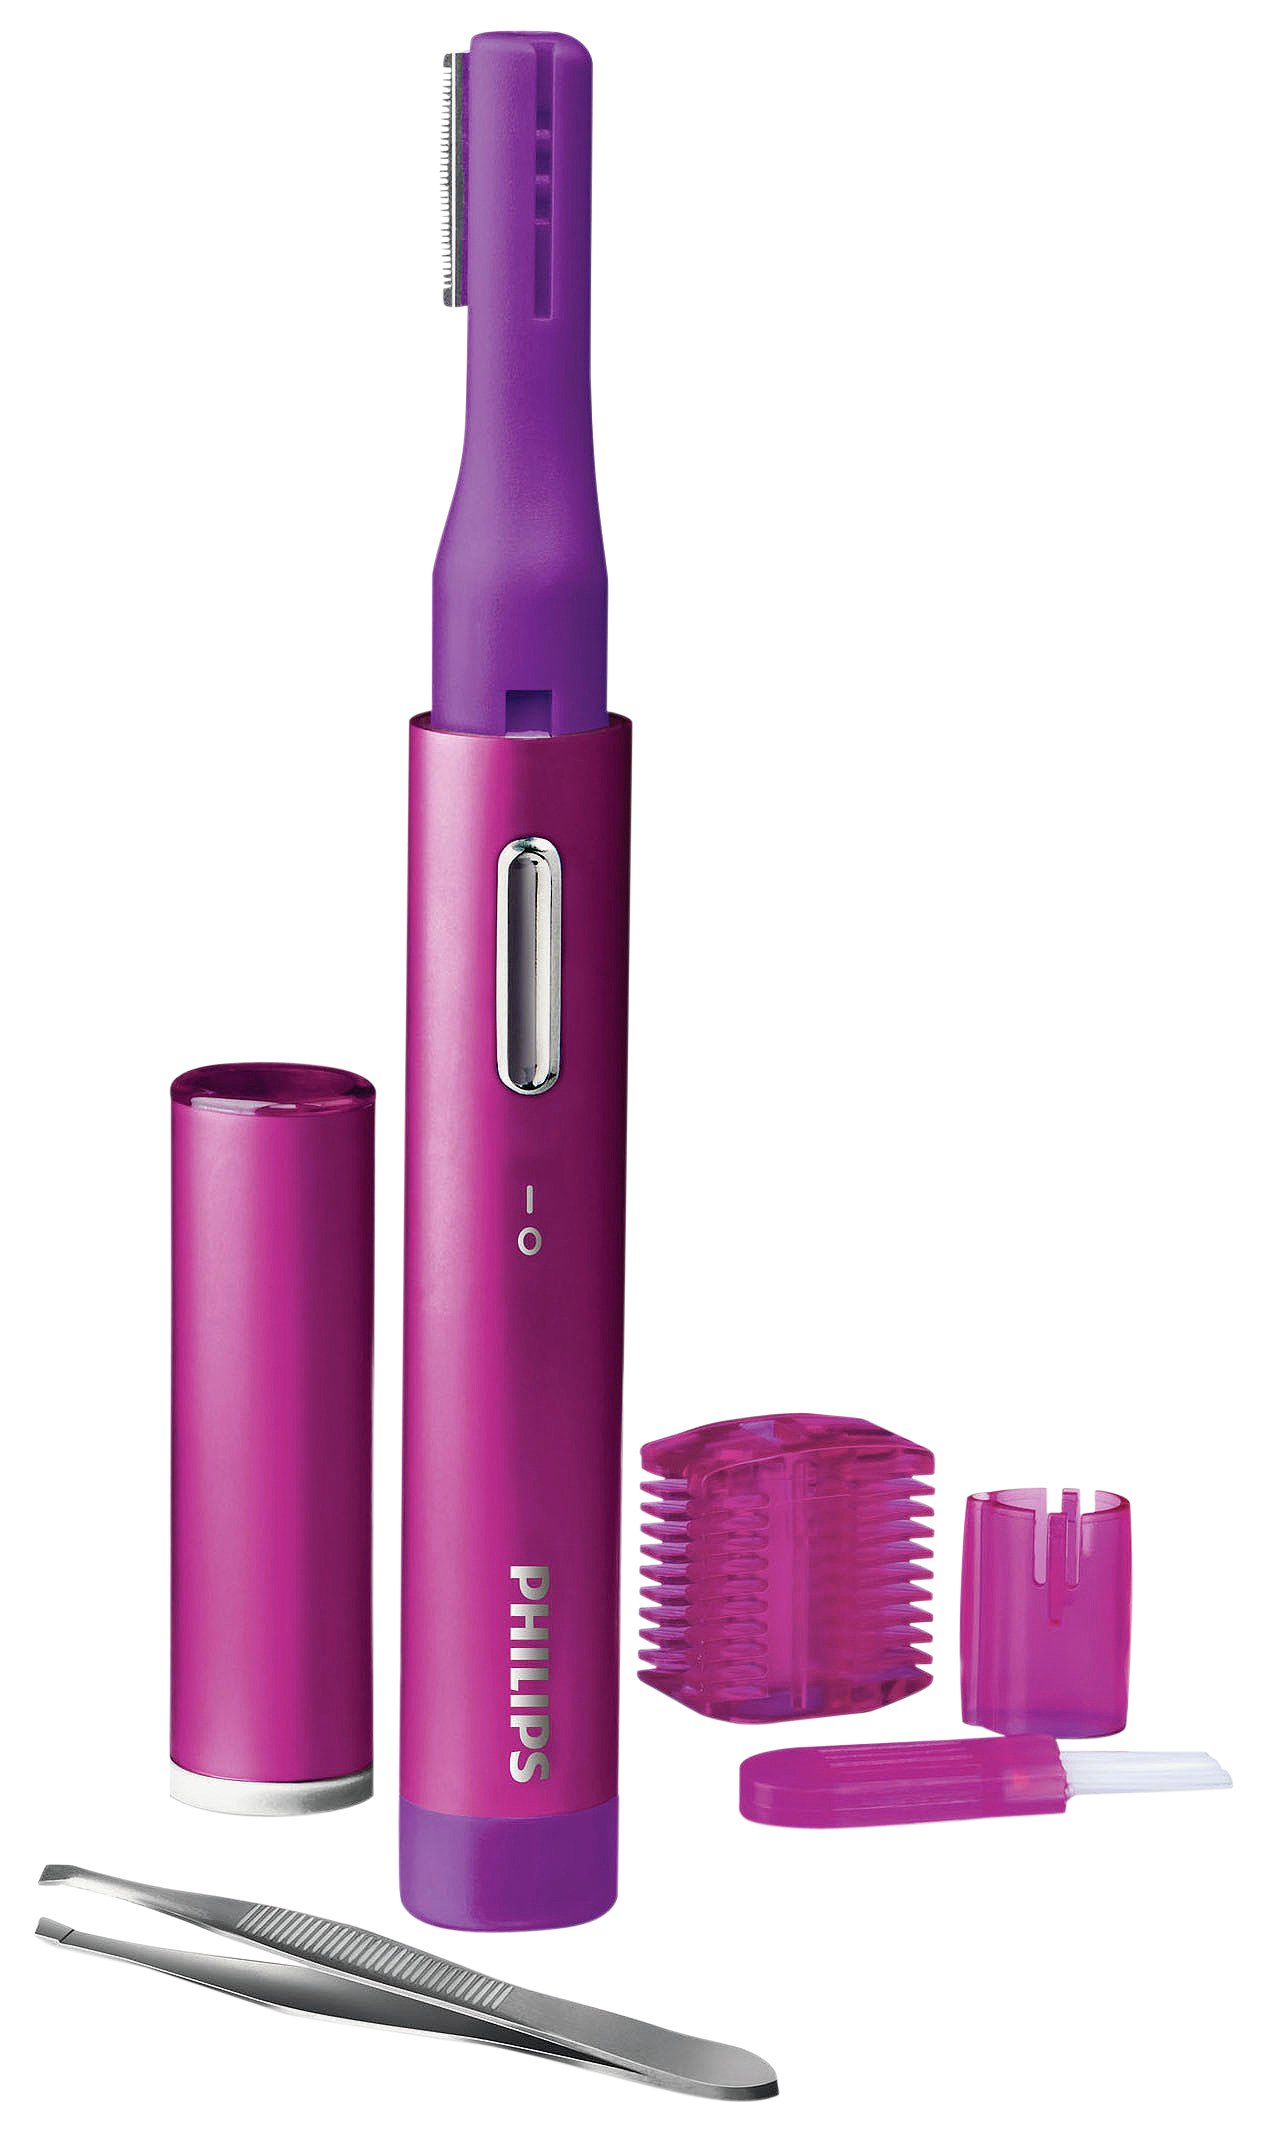 Philips HP6390 Precision Perfect Facial Trimmer